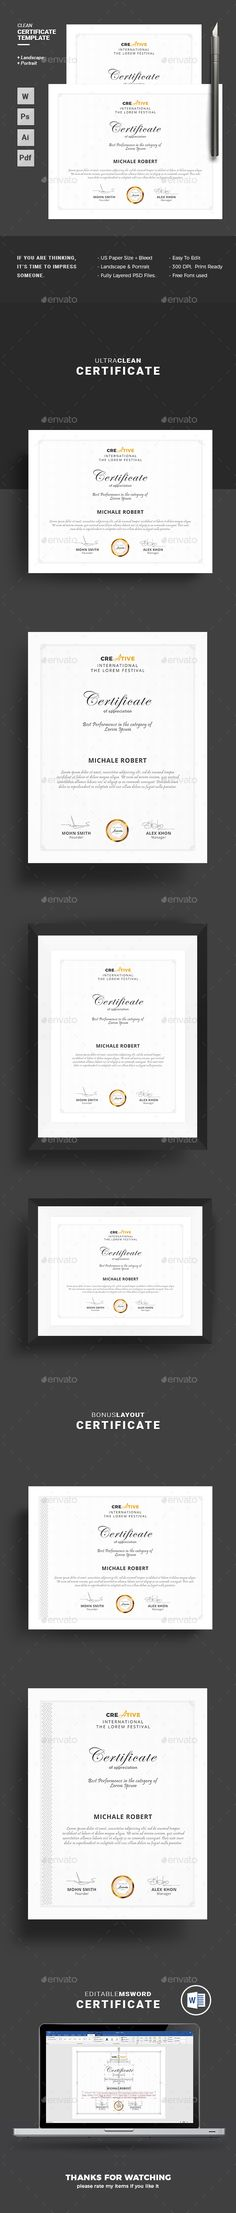 Certificate Business company, Certificate and Template - degree certificate template